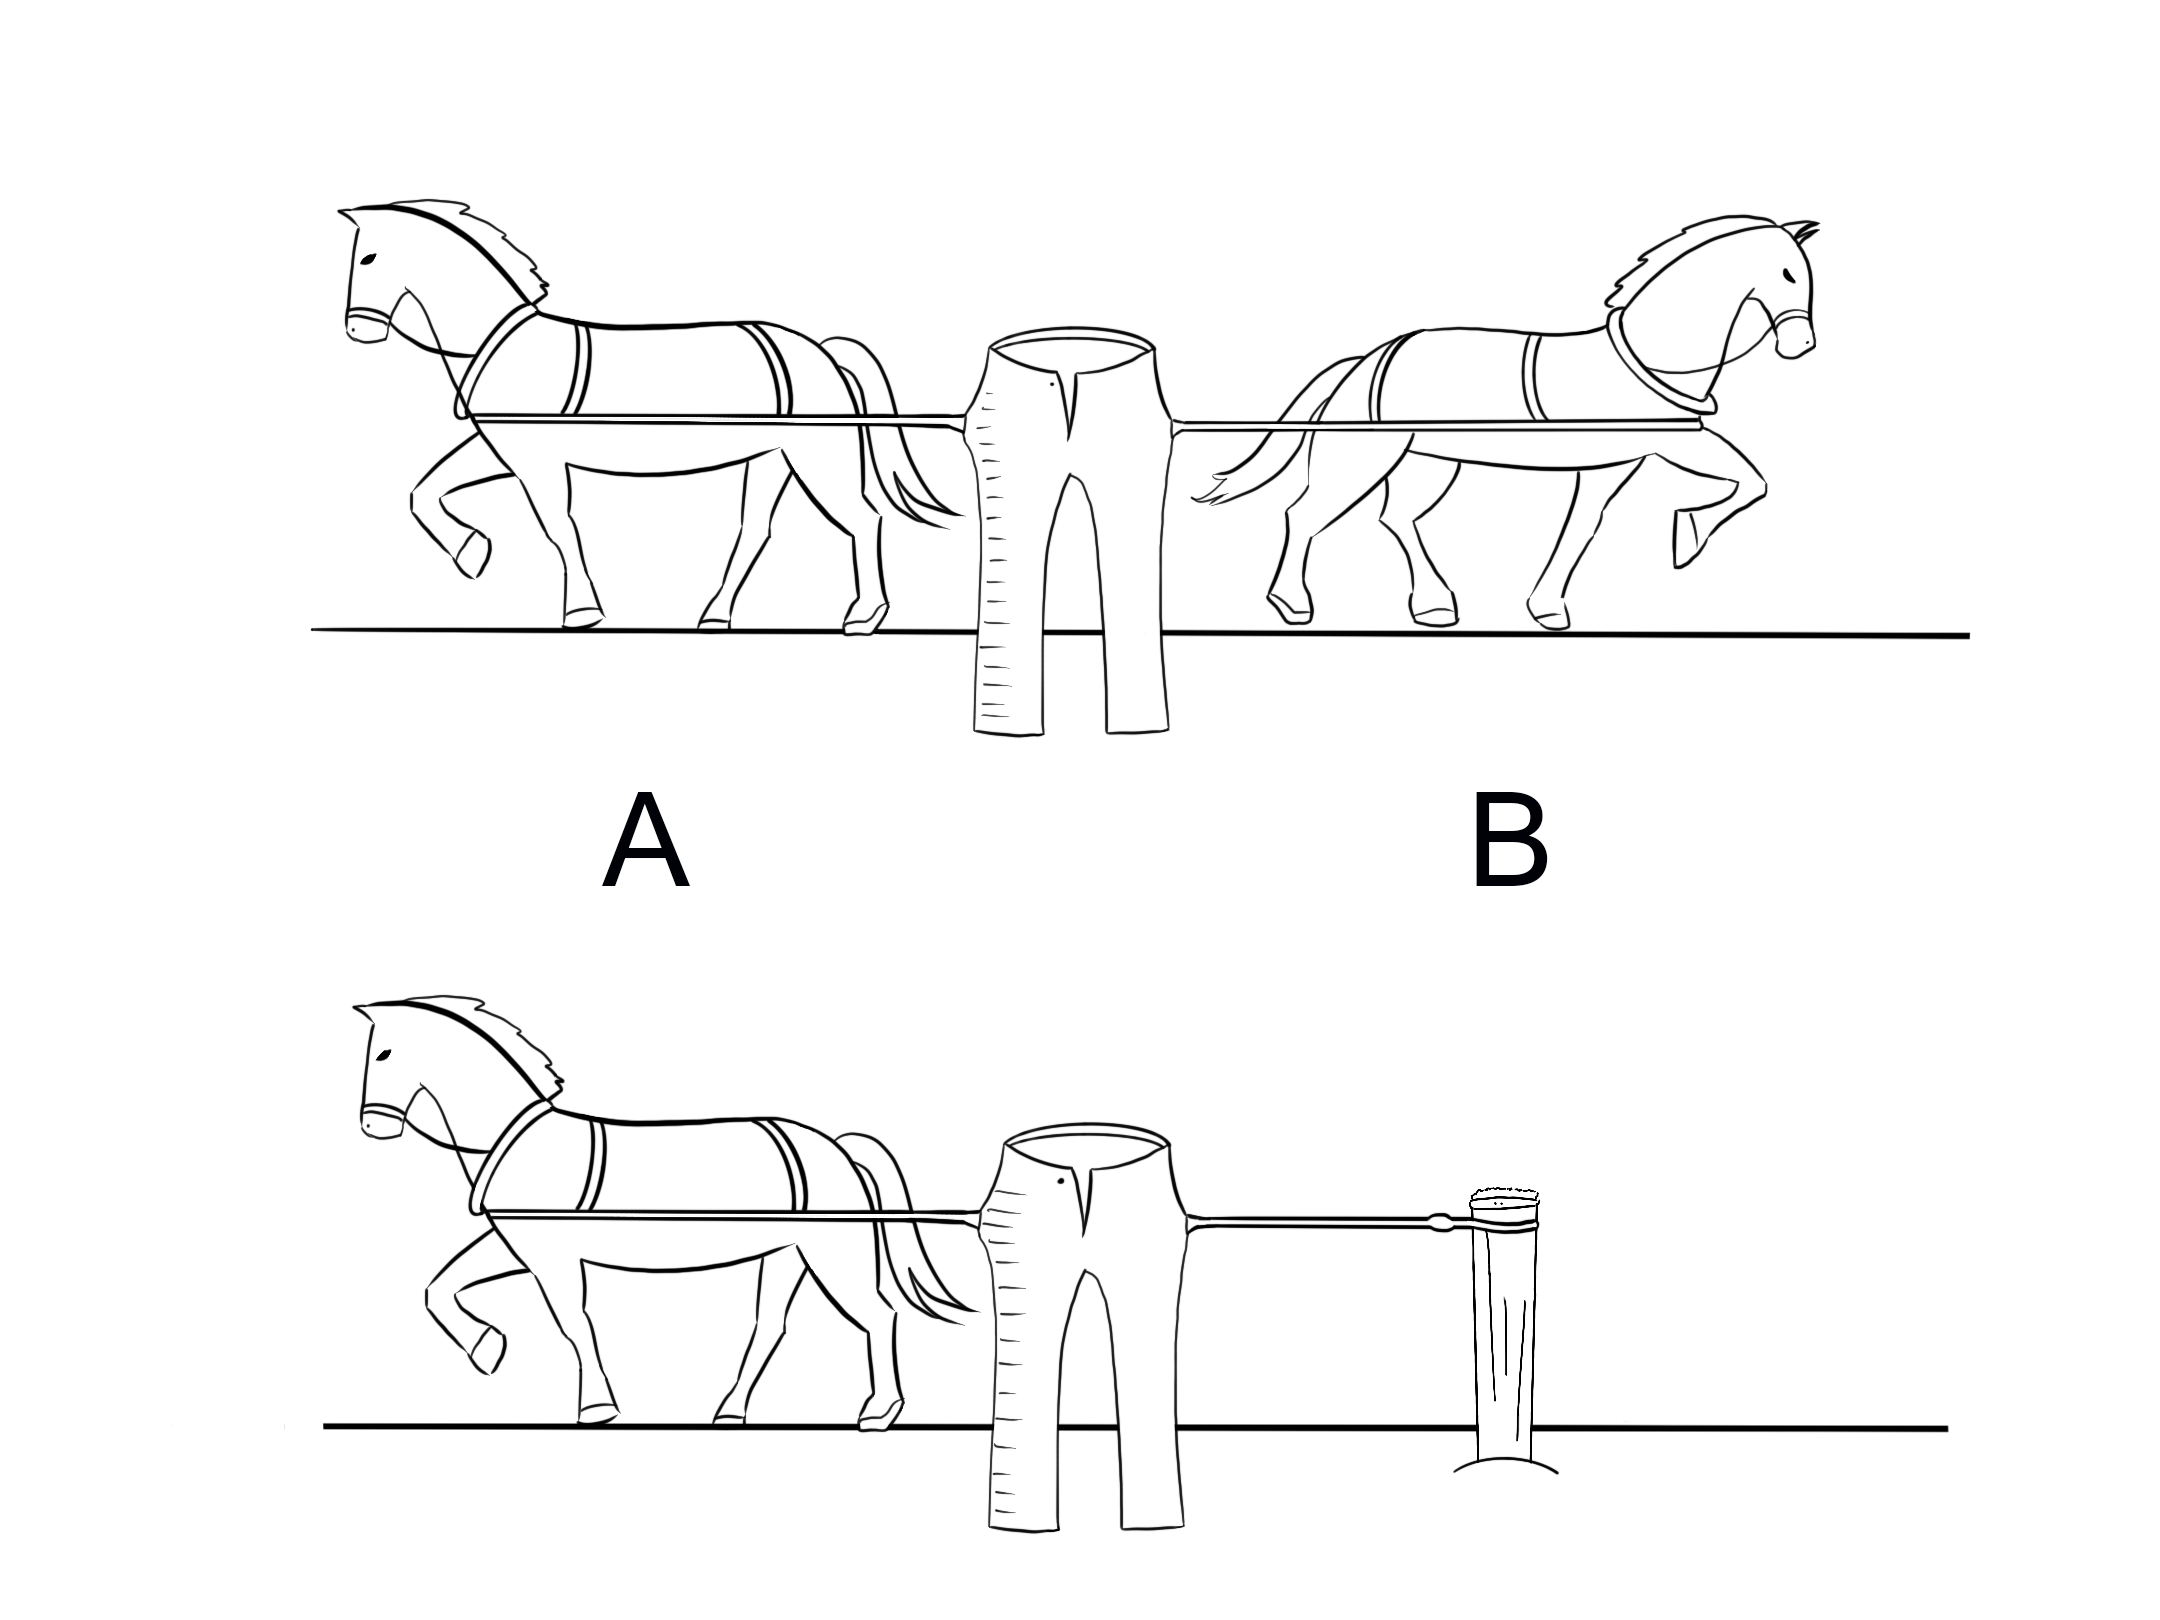 An Engineer's View of the Two Horse Brand Figure 2. Diagram of two horses versus one horse